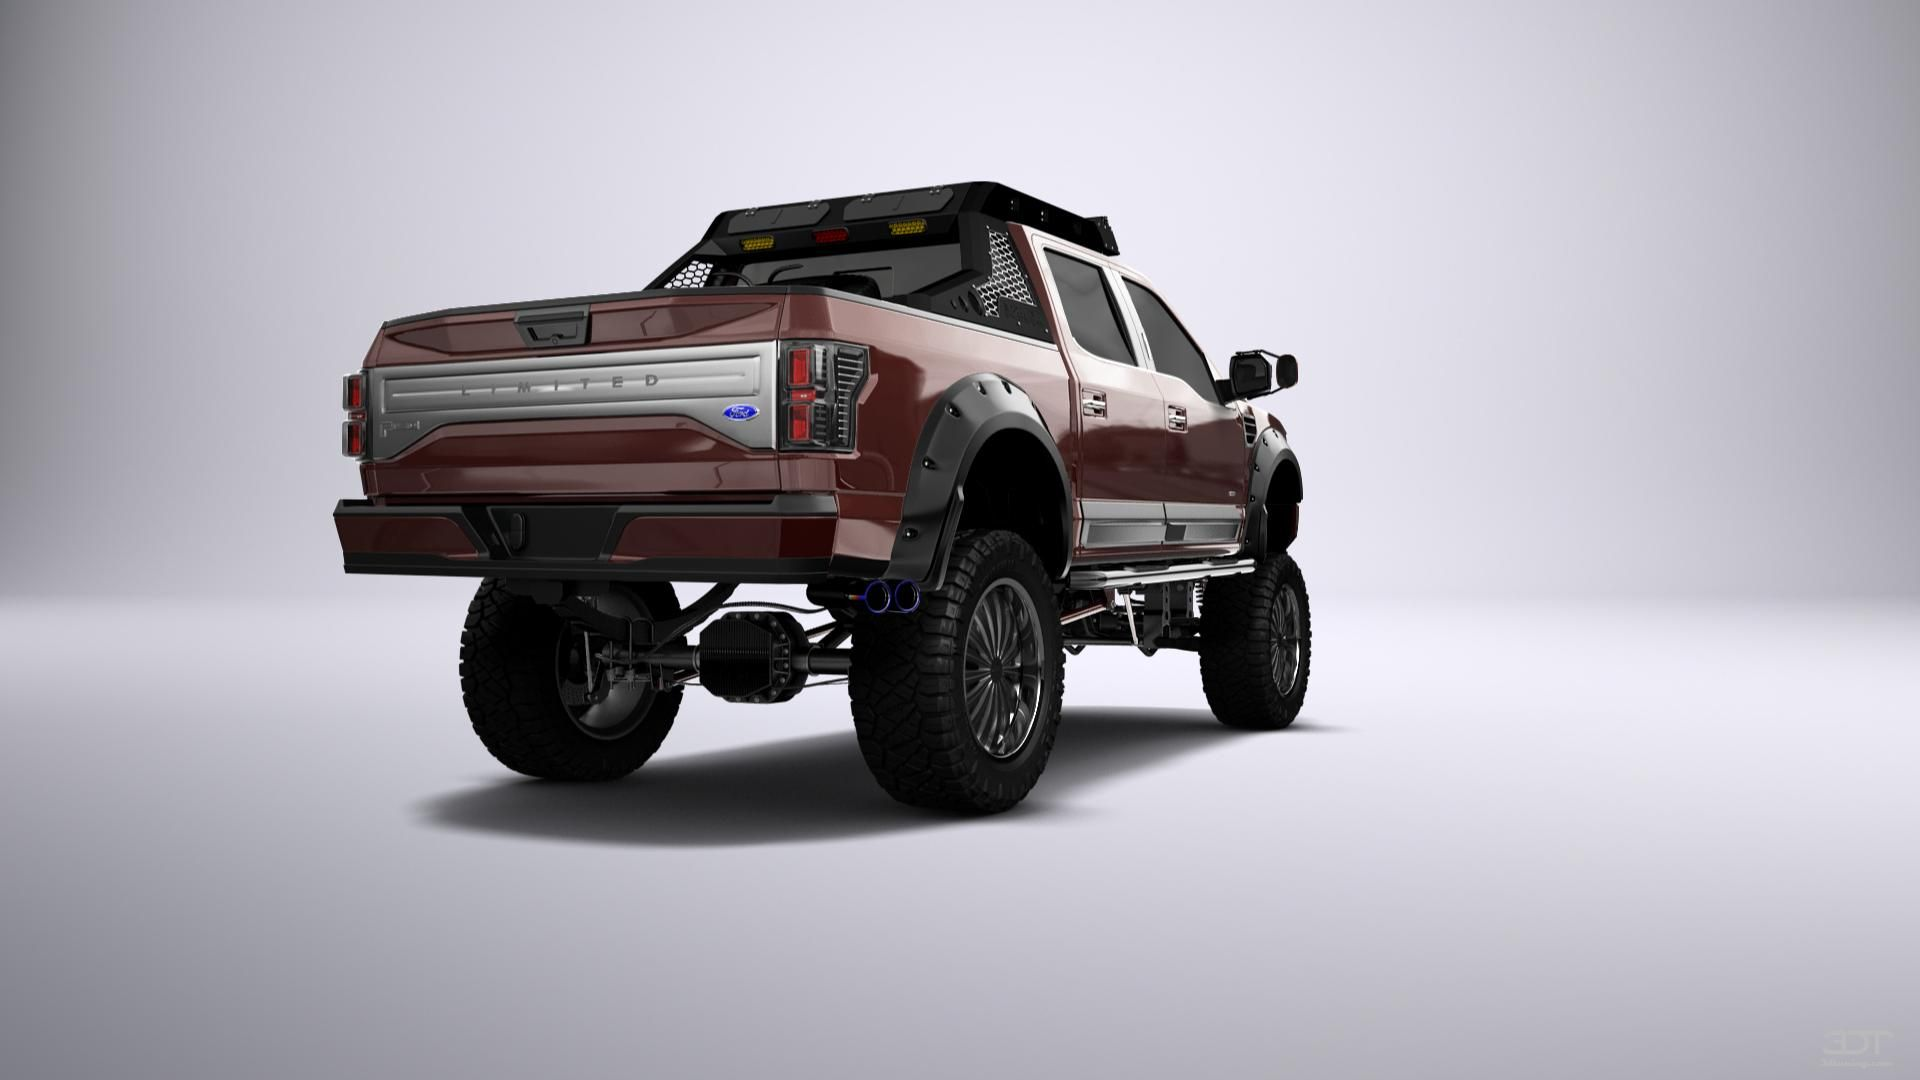 Checkout My Tuning Ford F 150 2019 At 3dtuning 3dtuning Tuning Ford Ford F150 Car Painting